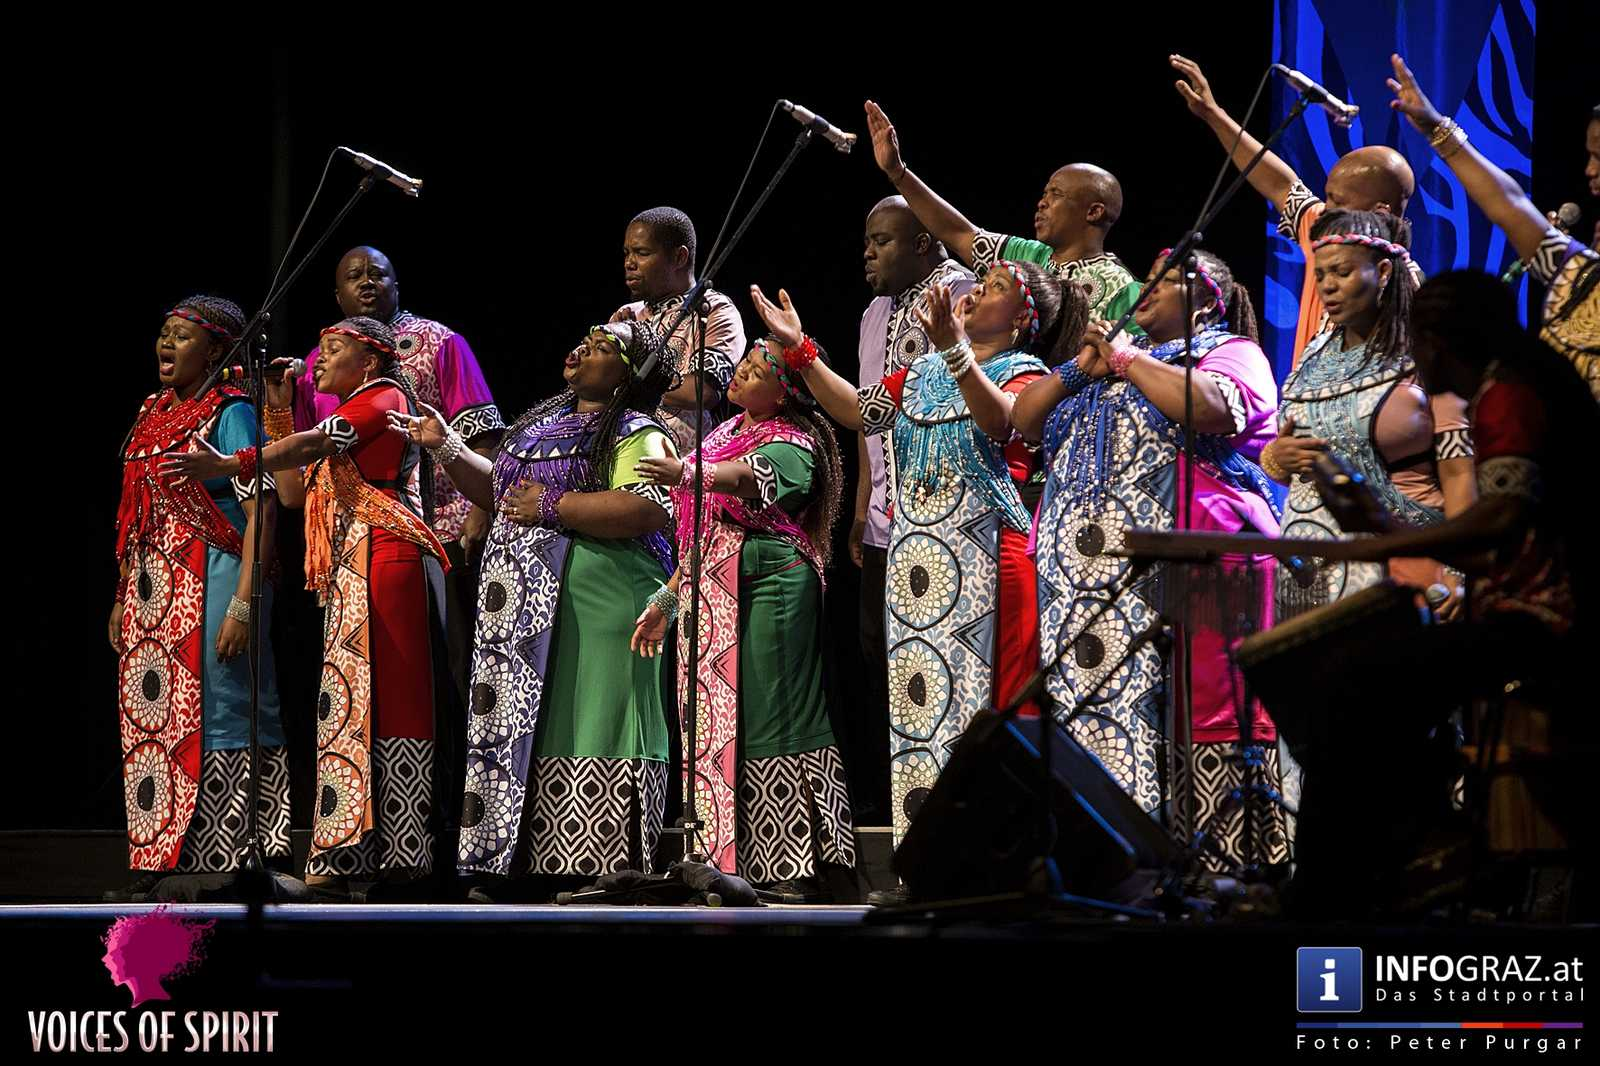 soweto gospel choir internationales chorfestival statdthalle graz voices of spirit eroeffnung festivals 2016 139